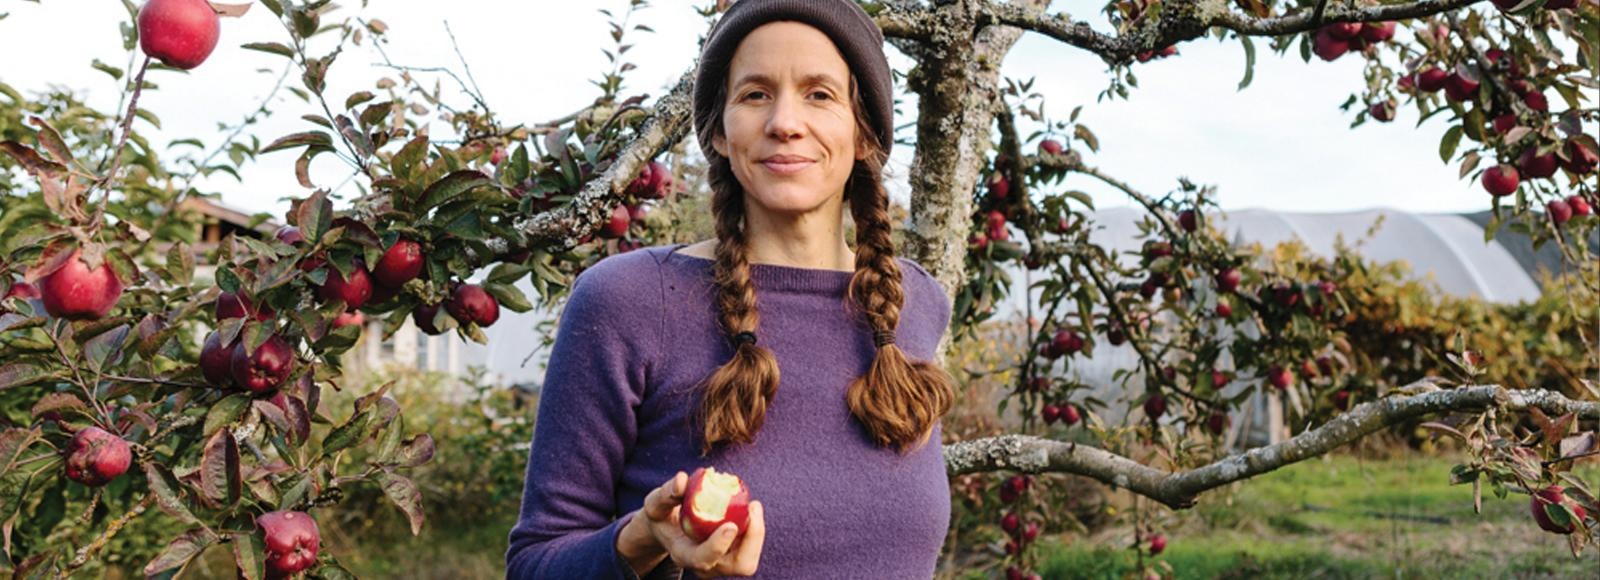 Woman in stocking cap and purple sweater with long pig tails holds an apple standing in front of a tree.